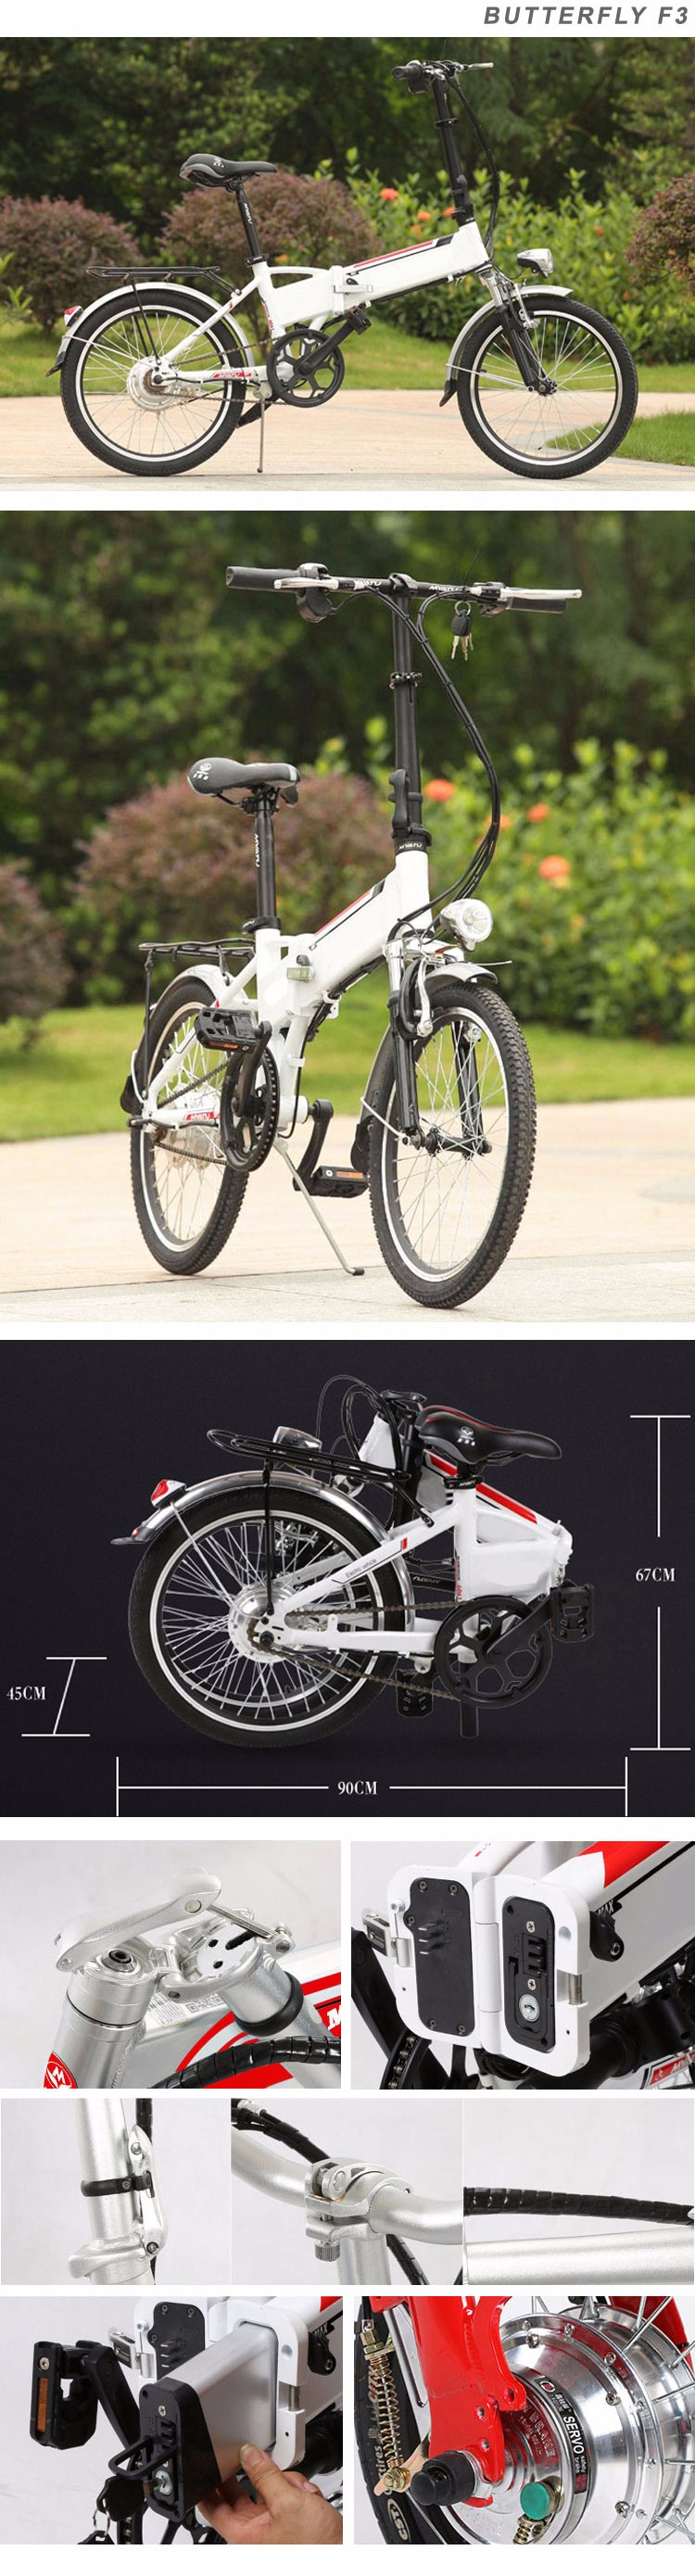 Dynabike Butterfly F3 - 16 Inch Foldable Electric Bicycle - 8AH Lithium Battery